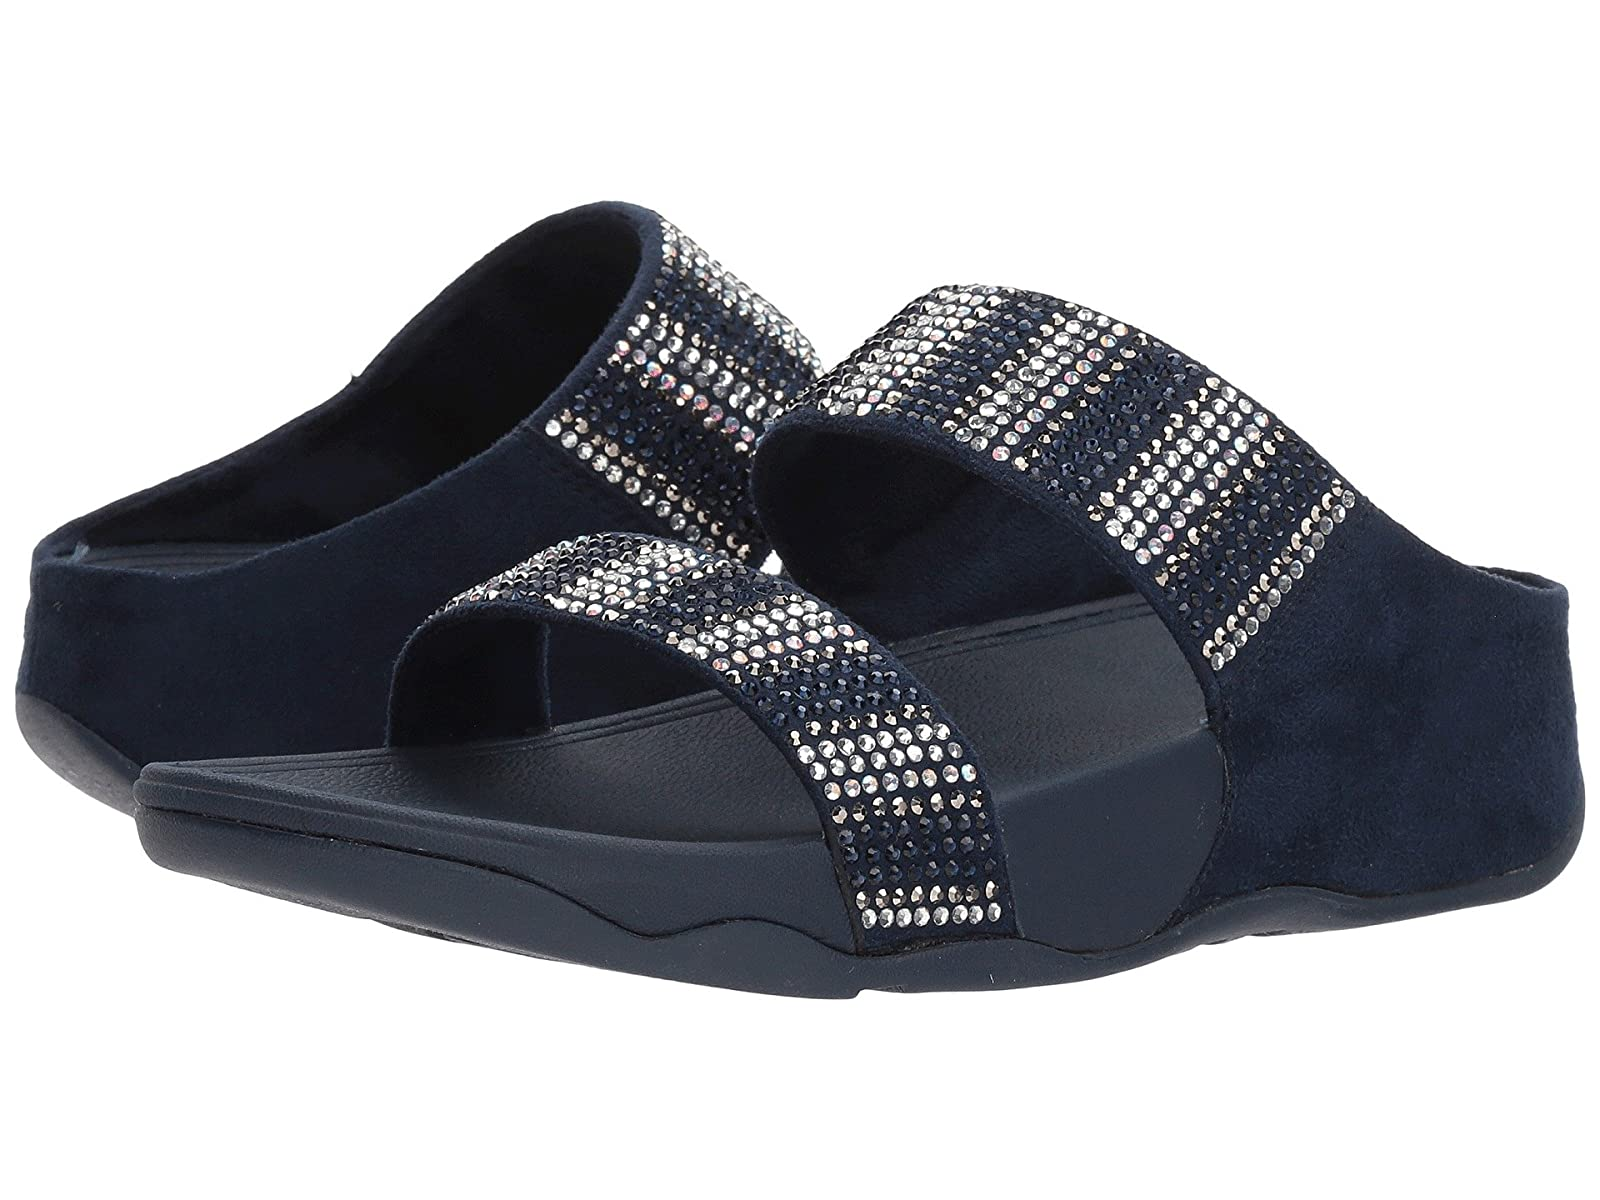 FitFlop Flare Strobe SlideCheap and distinctive eye-catching shoes